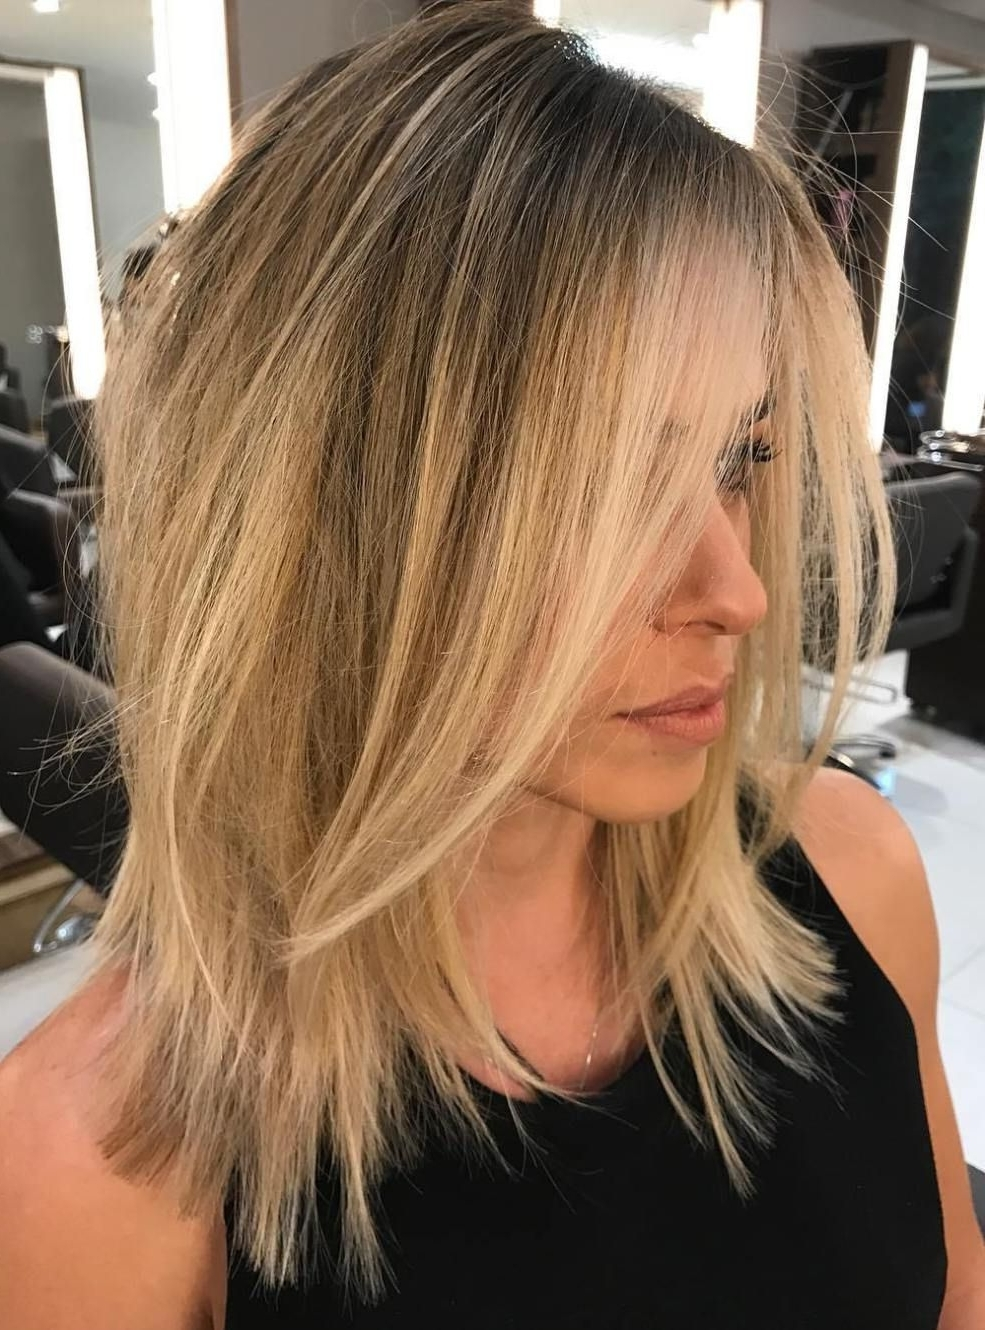 2017 Volumized Caramel Blonde Lob Hairstyles Intended For 70 Devastatingly Cool Haircuts For Thin Hair (View 2 of 20)